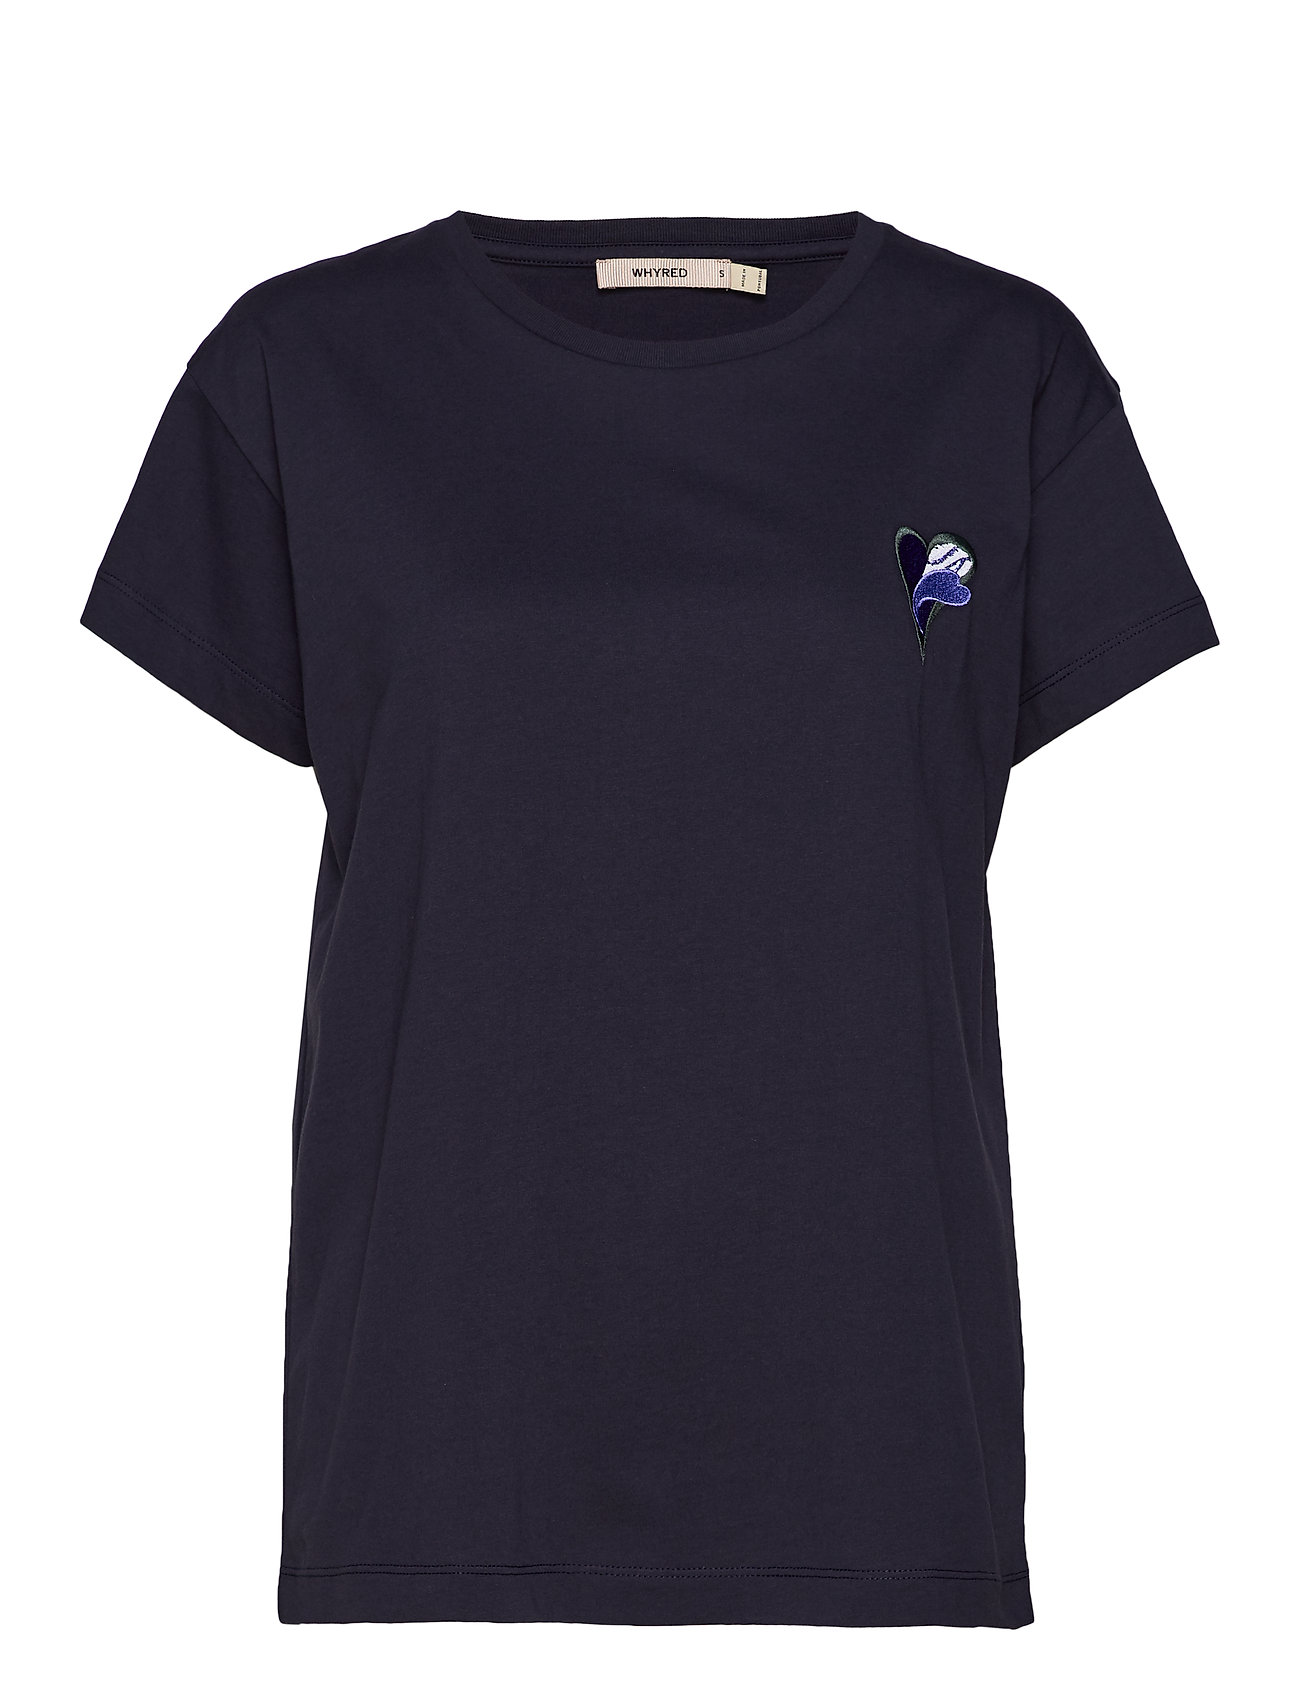 Whyred NICO EMBROIDERY - CLASSIC NAVY